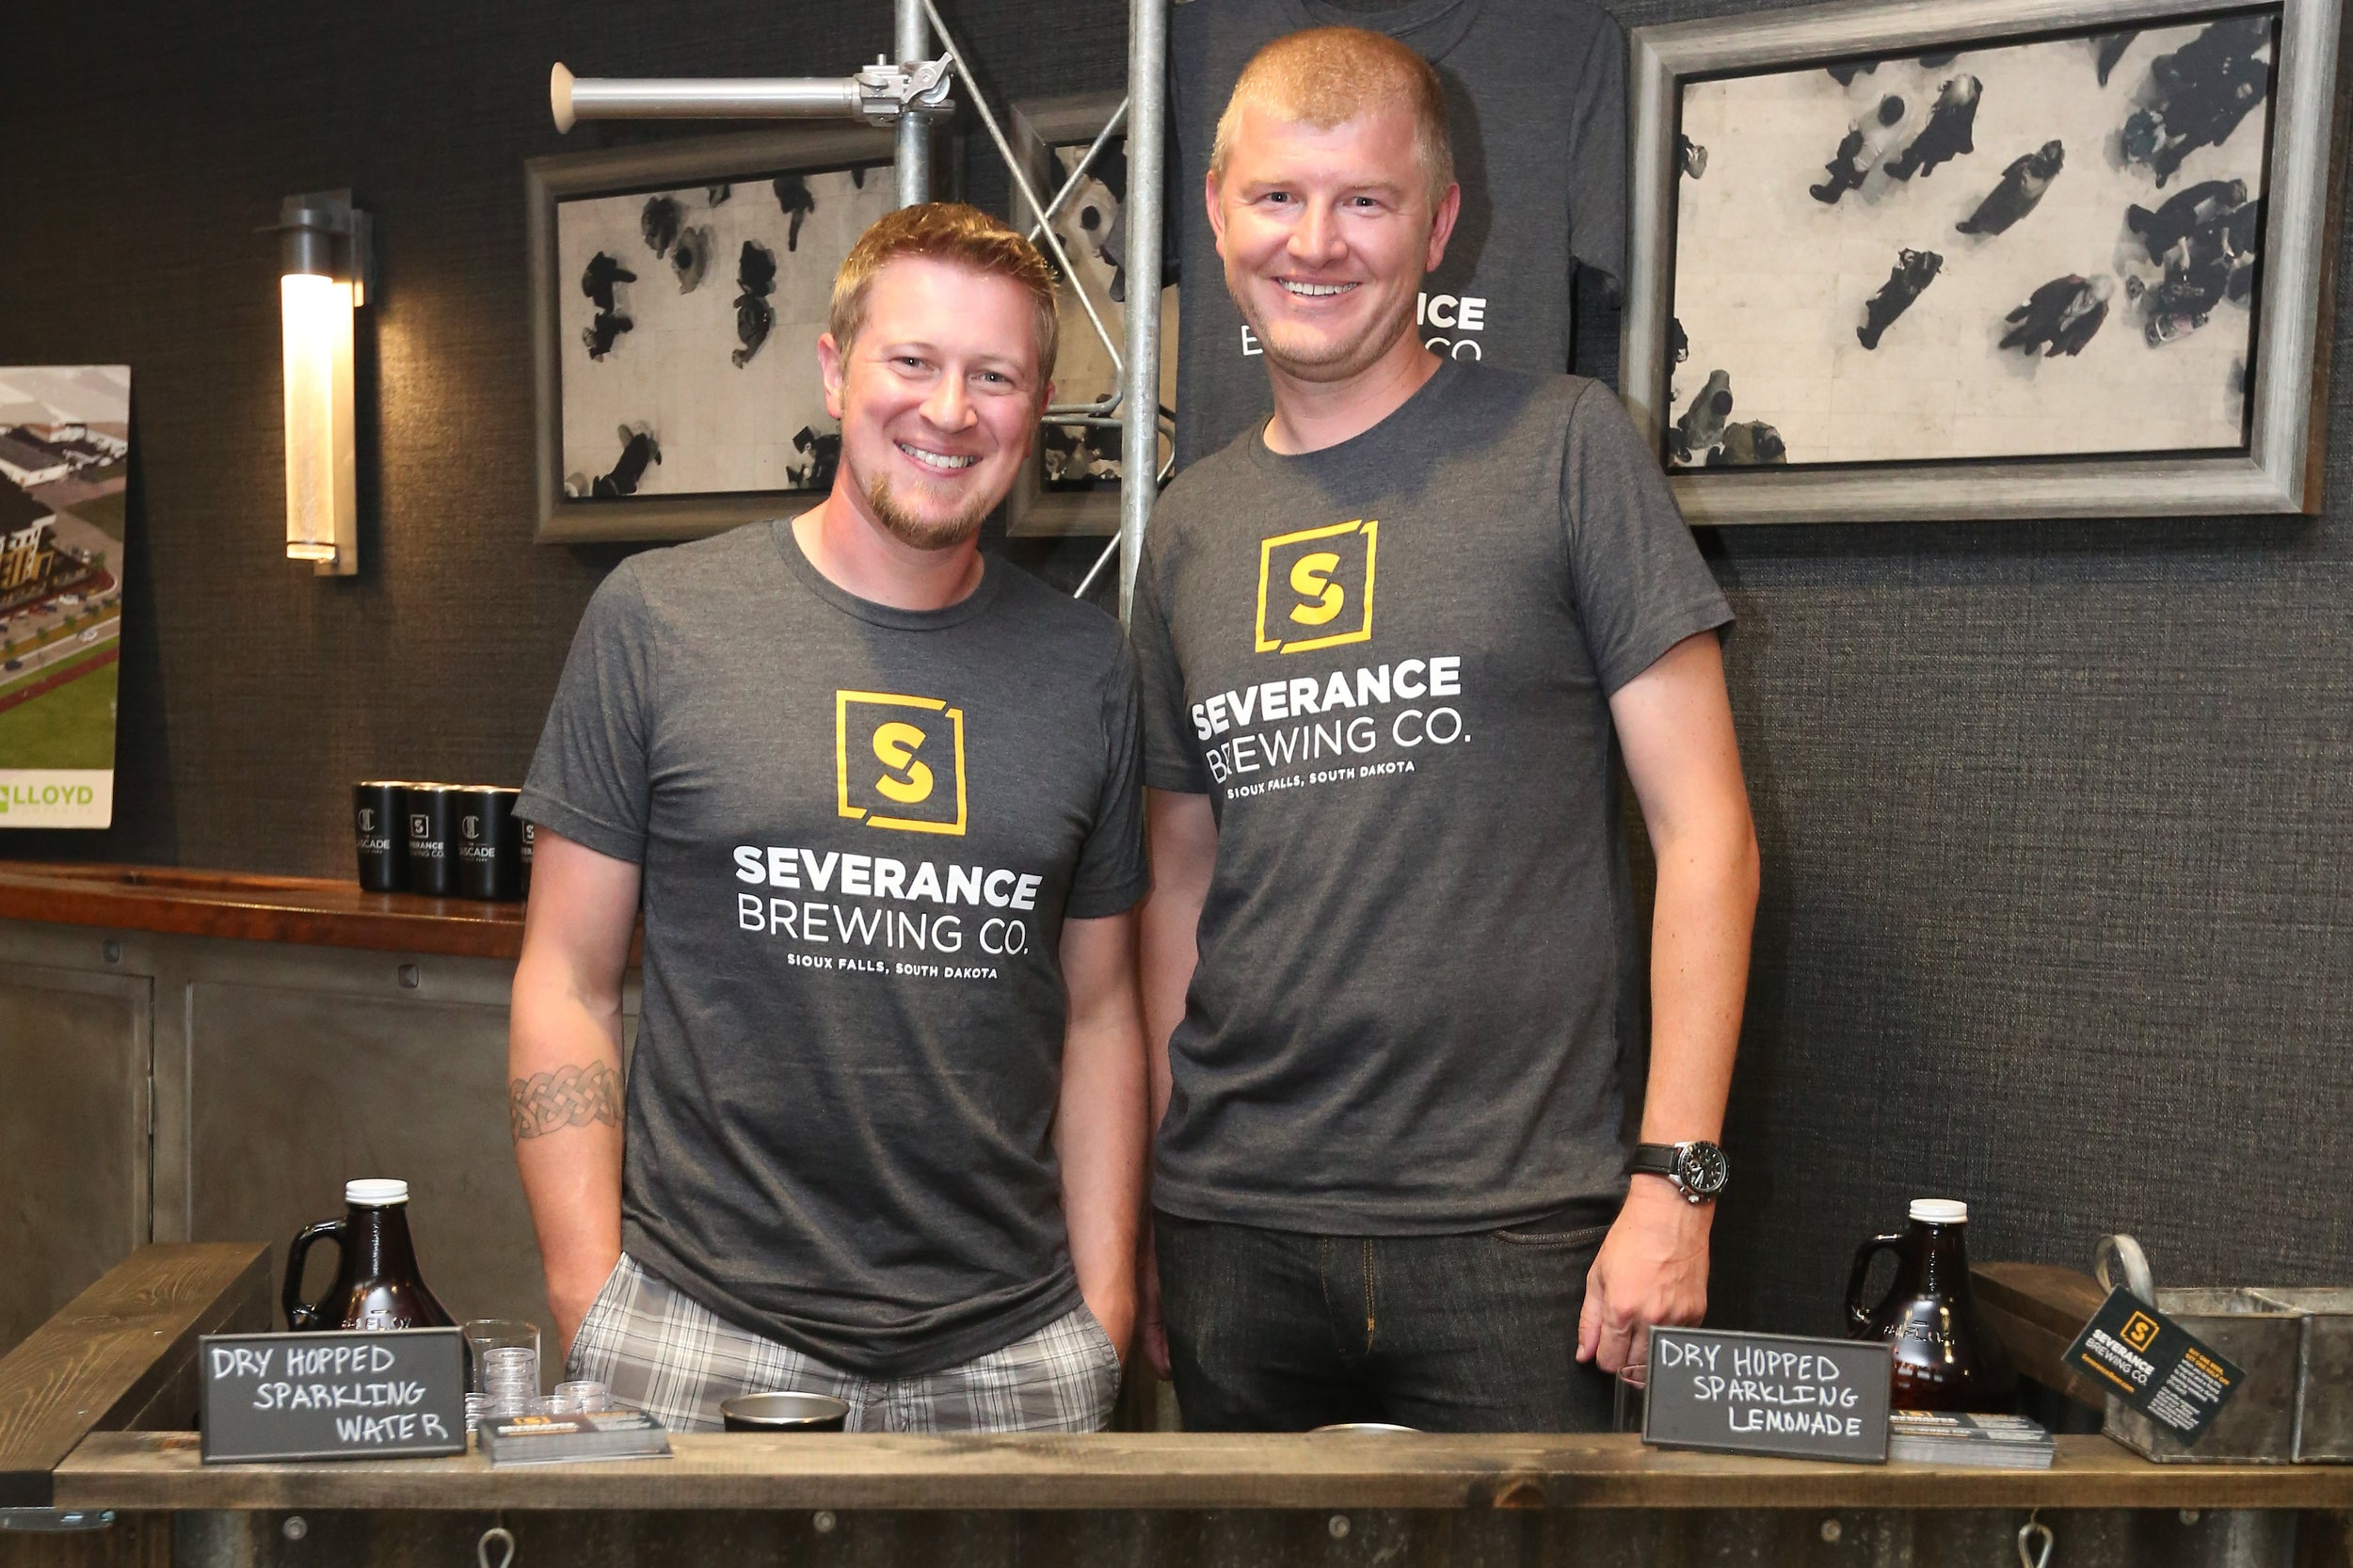 Severance Brewing Co. announces opening date - July 3, 2019 // Austin Lammers, Sioux Falls Argus LeaderThe doors to Severance Brewing Company will be open to Sioux Falls in less than a month.The new brewing company is set to open its brewery and taproom on Aug. 2 inside The Cascade, the apartment complex on Phillips Avenue across from the Levitt Shell inside Falls Park.